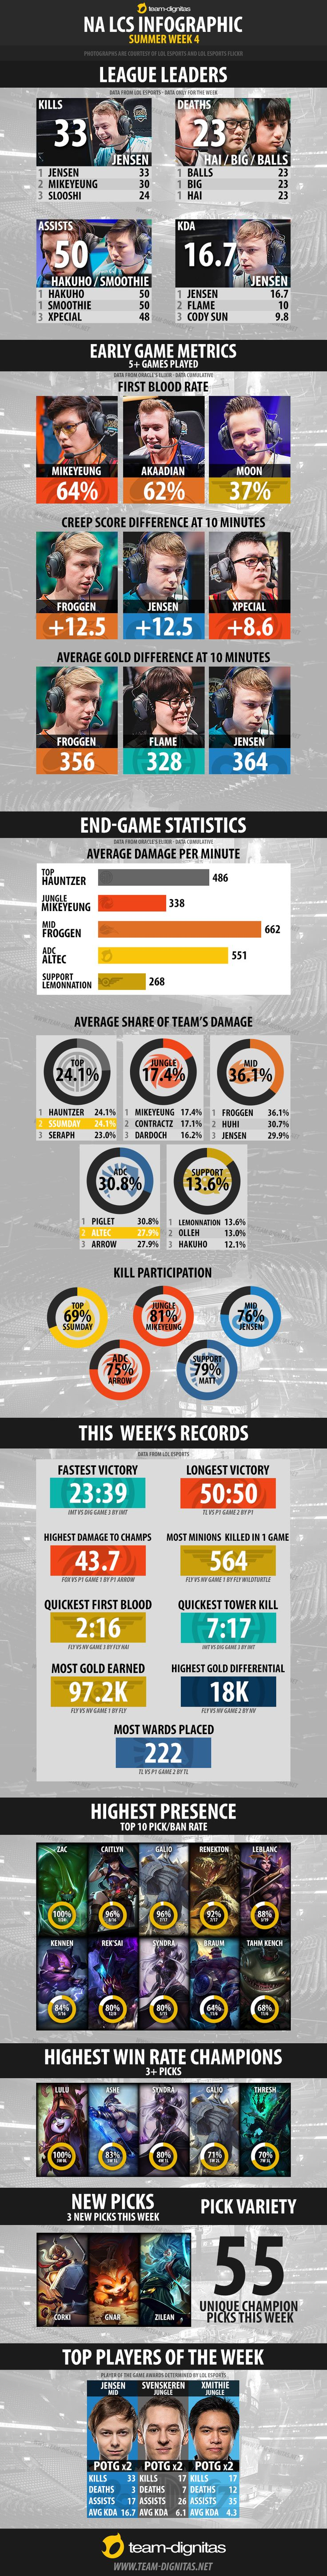 NA LCS Infographic - Summer Week 4 http://imgur.com/a/EfxwI #games #LeagueOfLegends #esports #lol #riot #Worlds #gaming